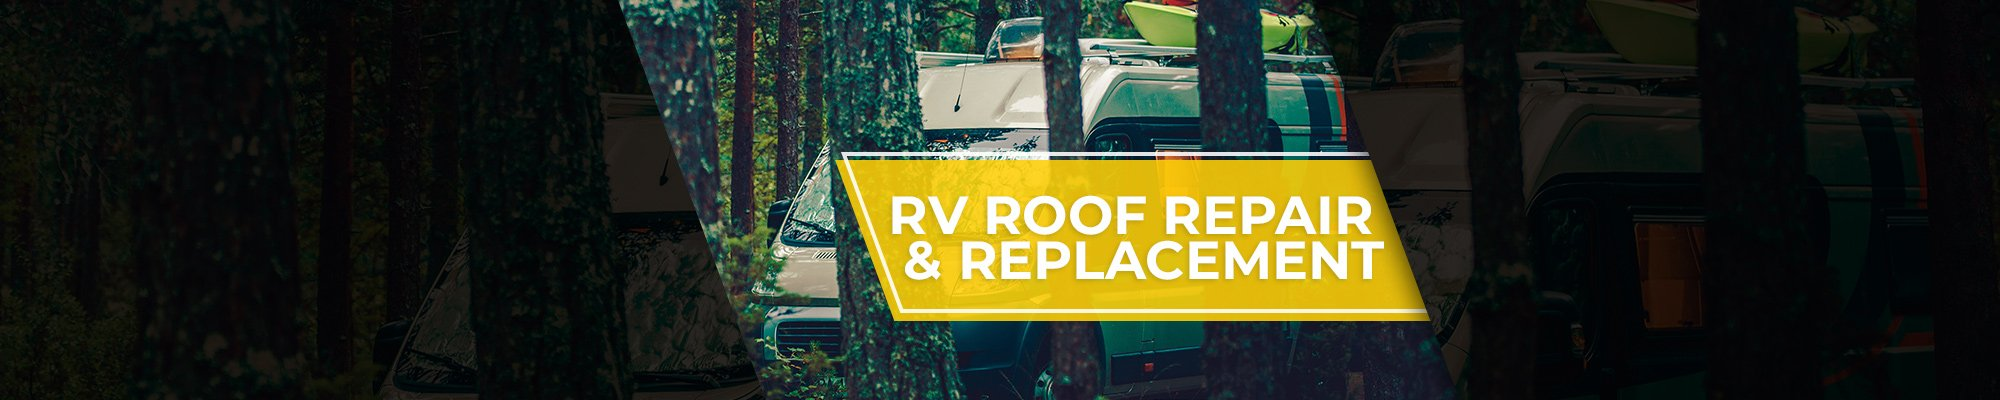 RV ROOF REPAIR AND REPLACEMENT HOUSTON